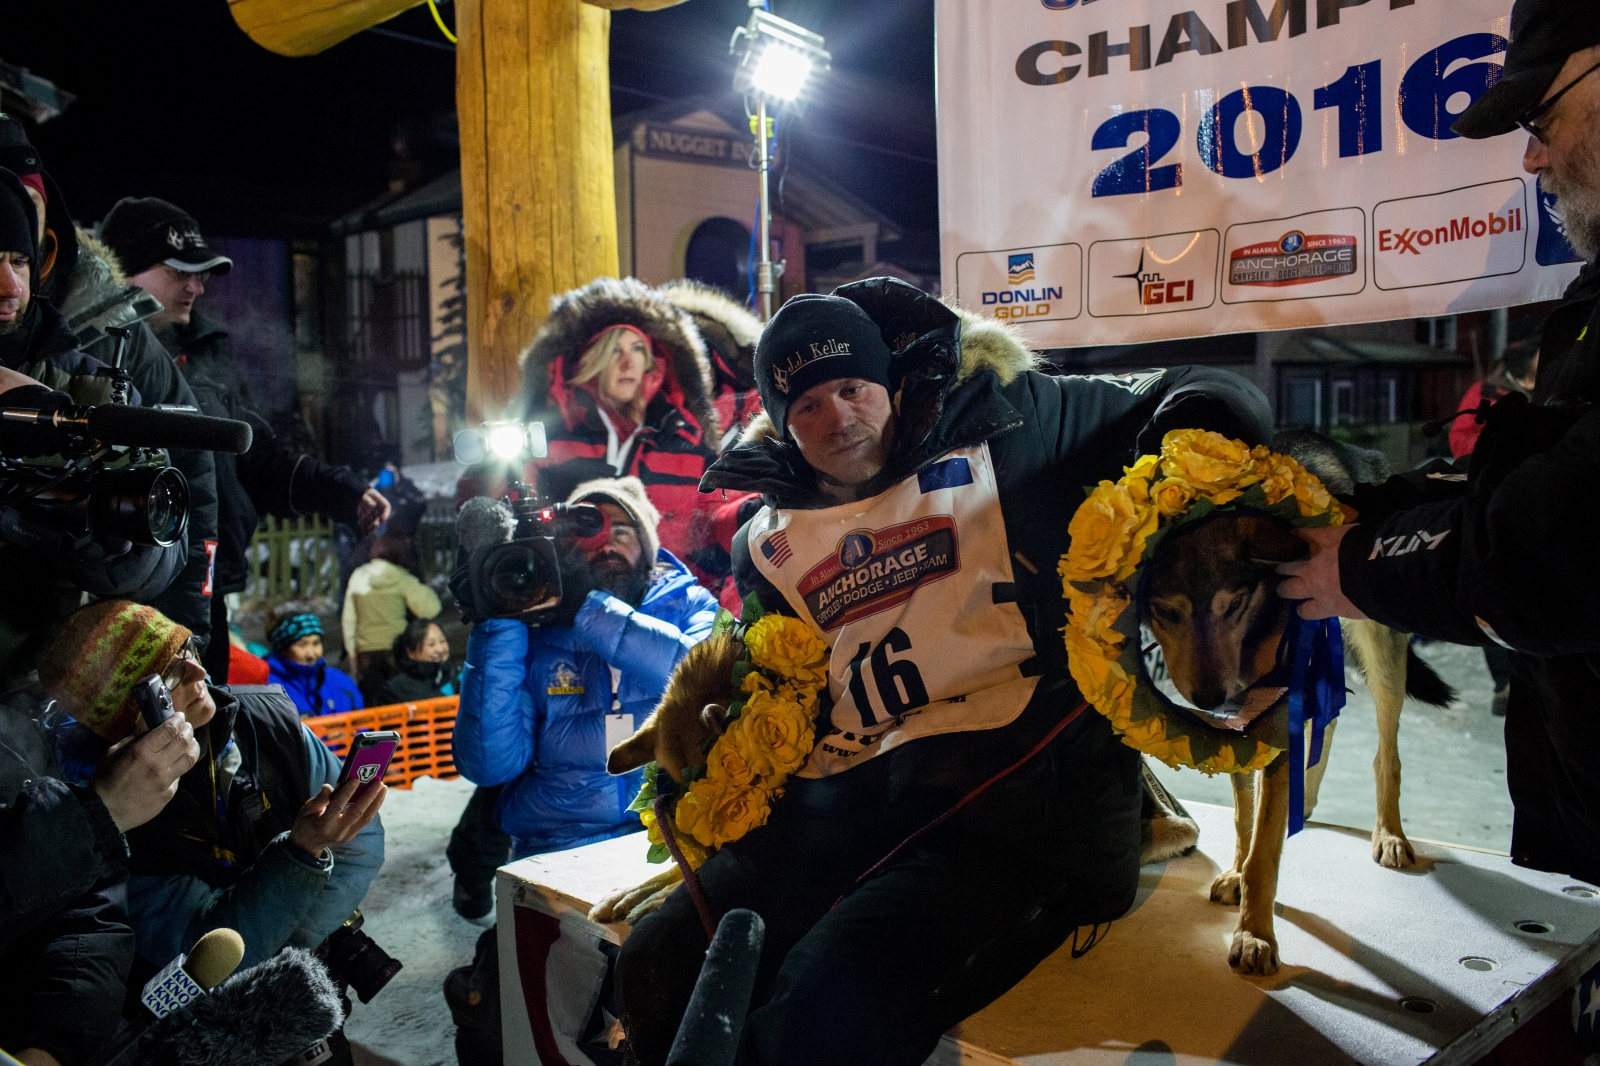 Dallas Seavey arrives in Nome at 2:20 a.m. AKDT on March 15, 2016, winning his fourth Iditarod in 5 years and setting a new record for the fastest time, running the nearly 1,000 mile race in eight days, 11 hours, 20 minutes, and 16 seconds. The previous record was held by Seavey from his win in 2014, when he completed the race in eight days, 13 hours, 4 minutes, and 19 seconds.